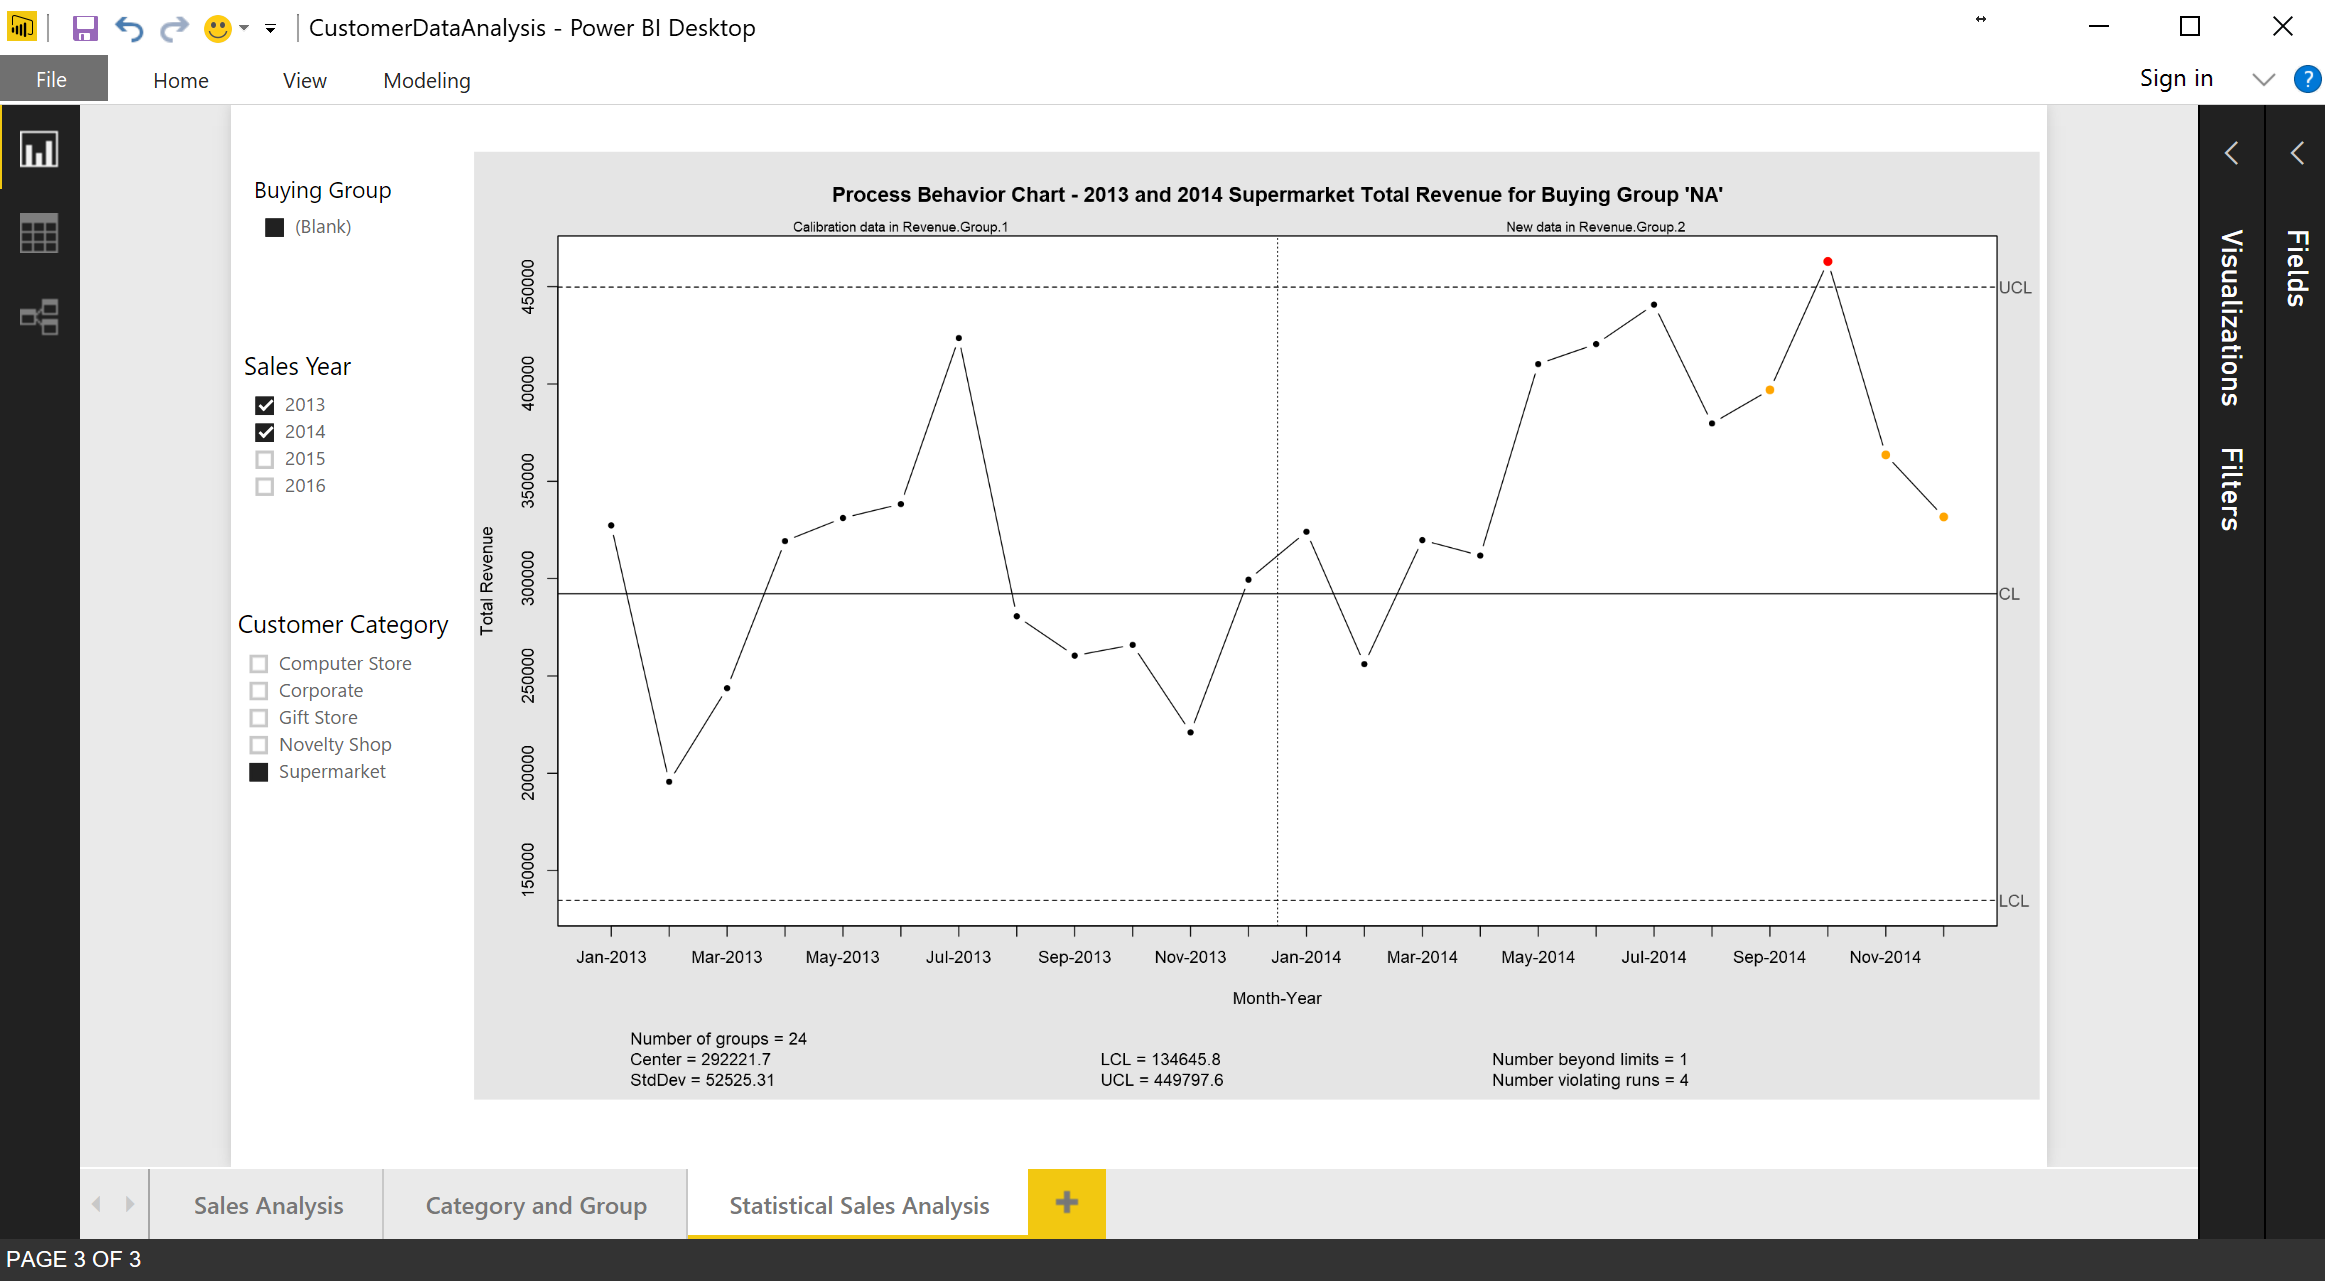 Power BI and R Image of Process Behavior